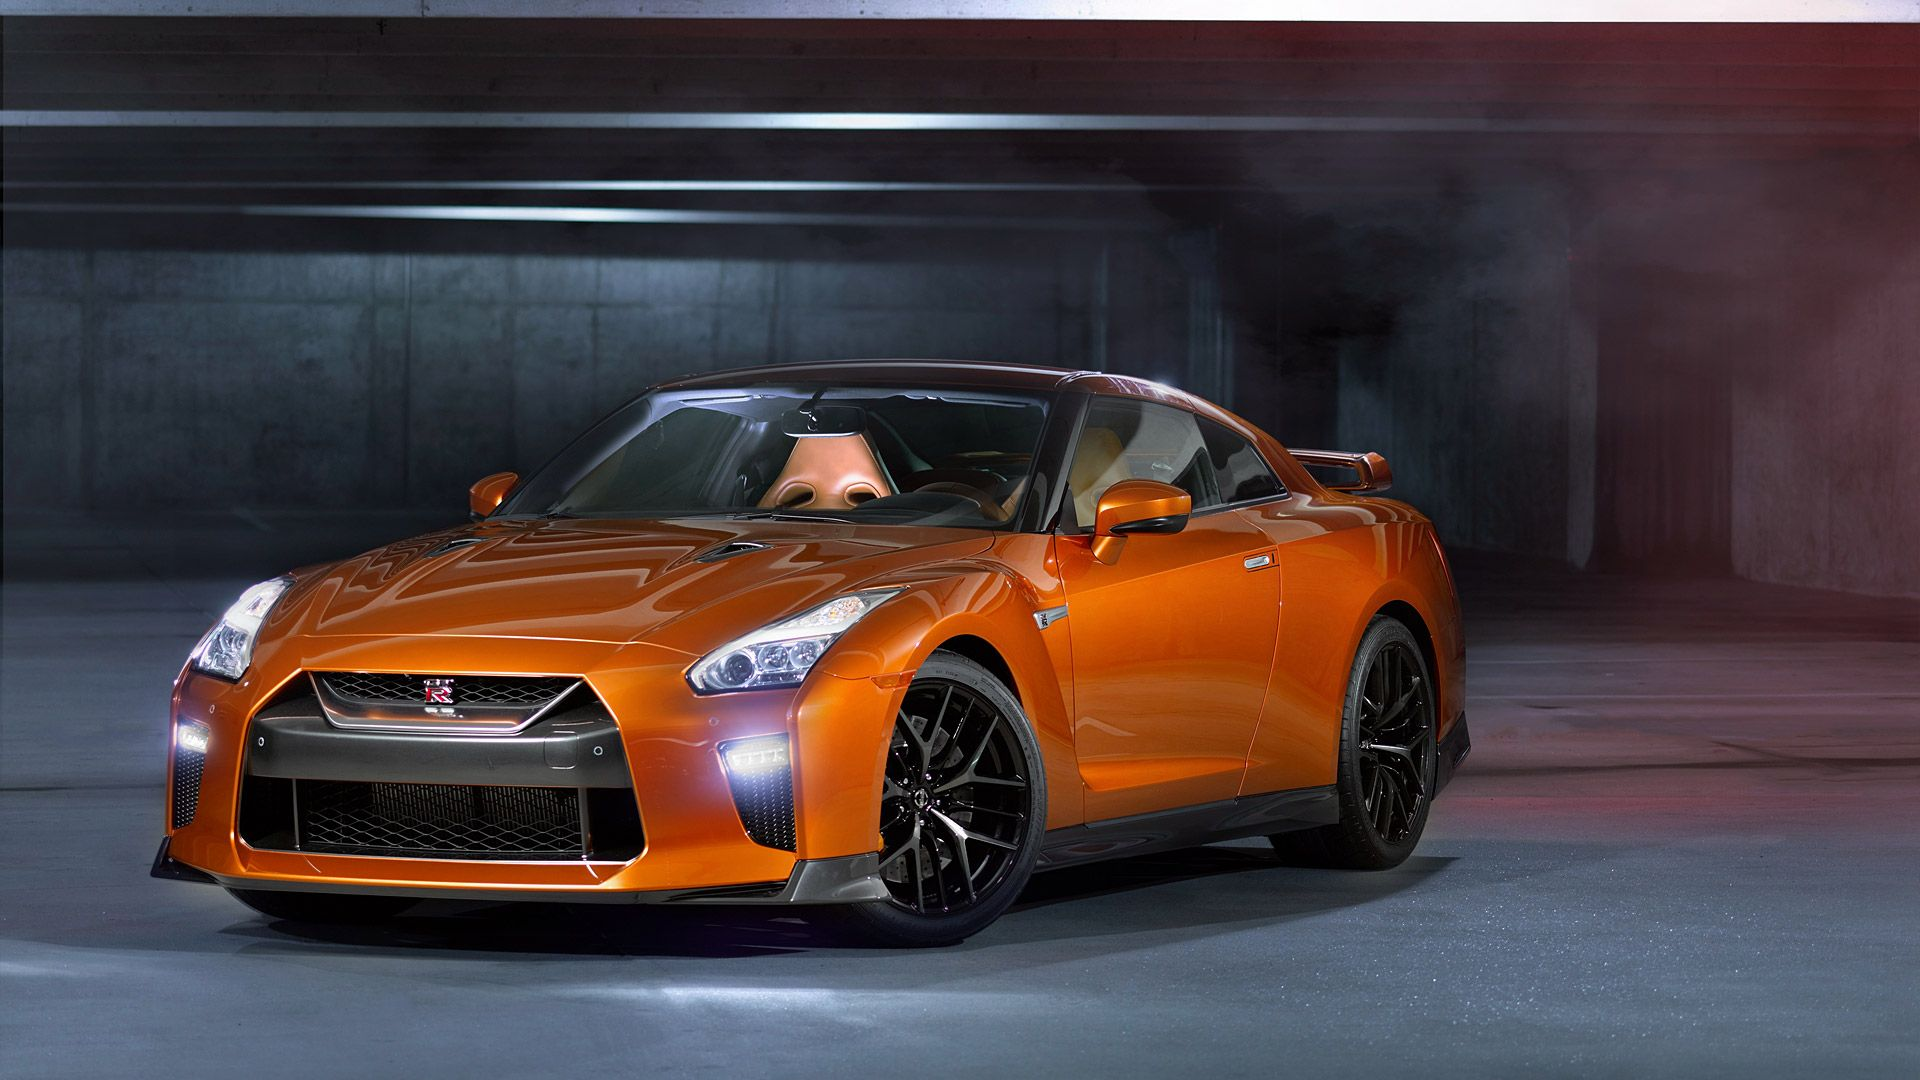 pictures of gtr cars